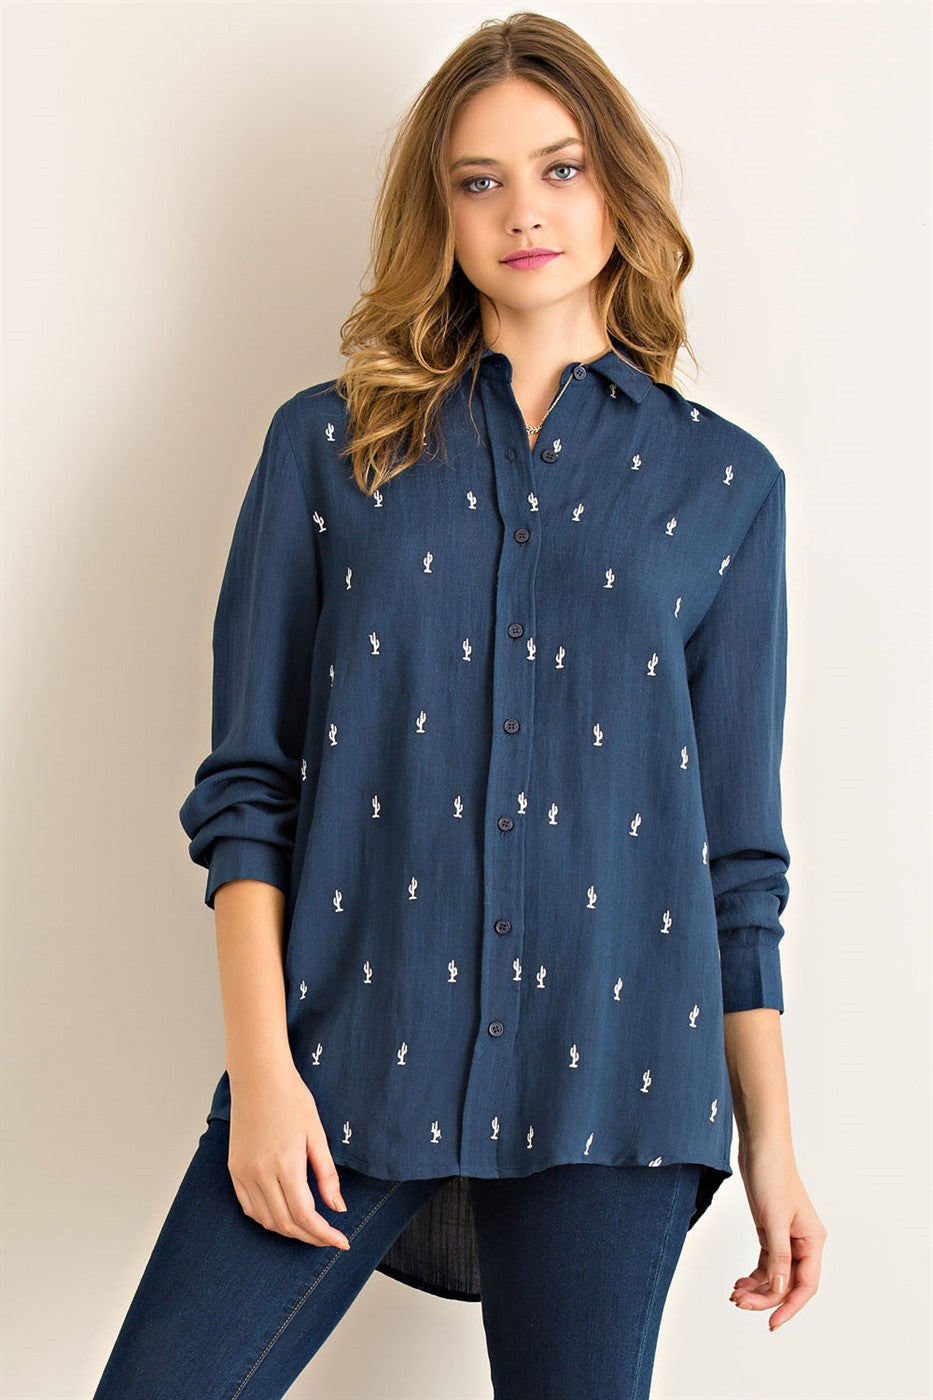 Solid crinkle button down shirt